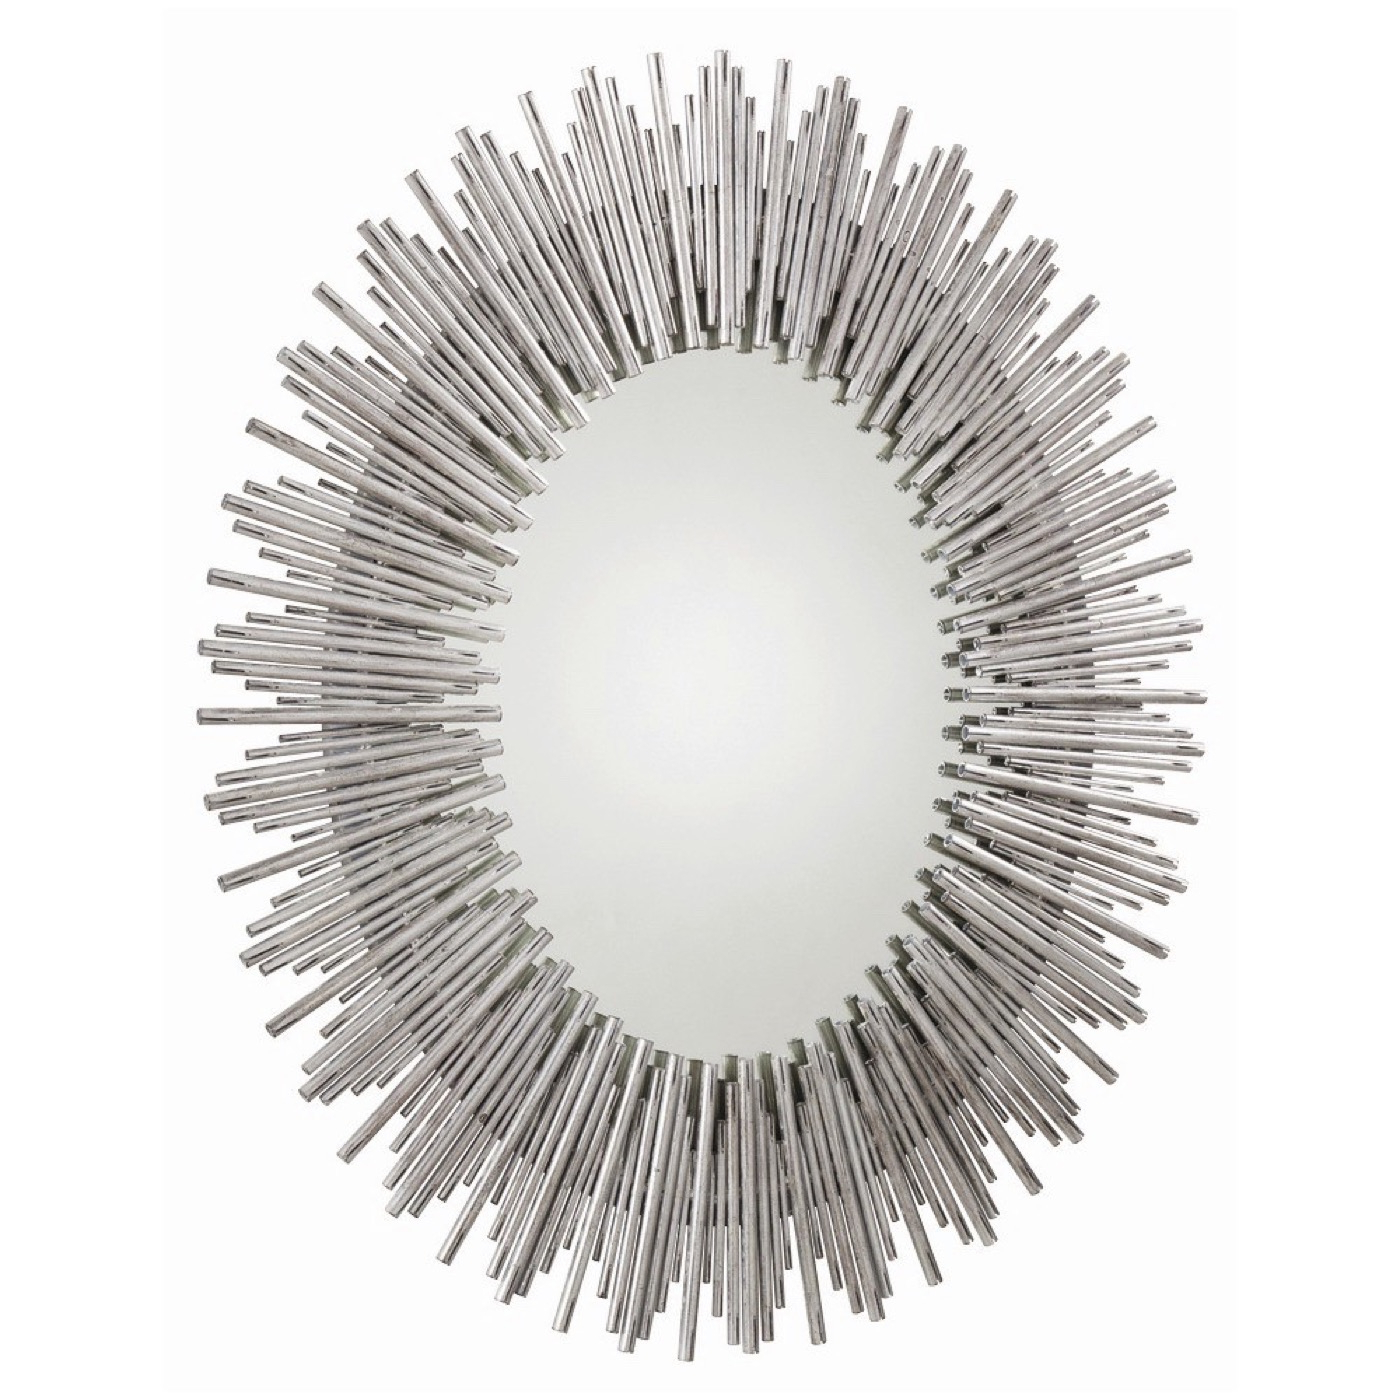 Kentwood Round Wall Mirrors Pertaining To Most Current Kentwood Oval Wall Mirror (View 11 of 20)